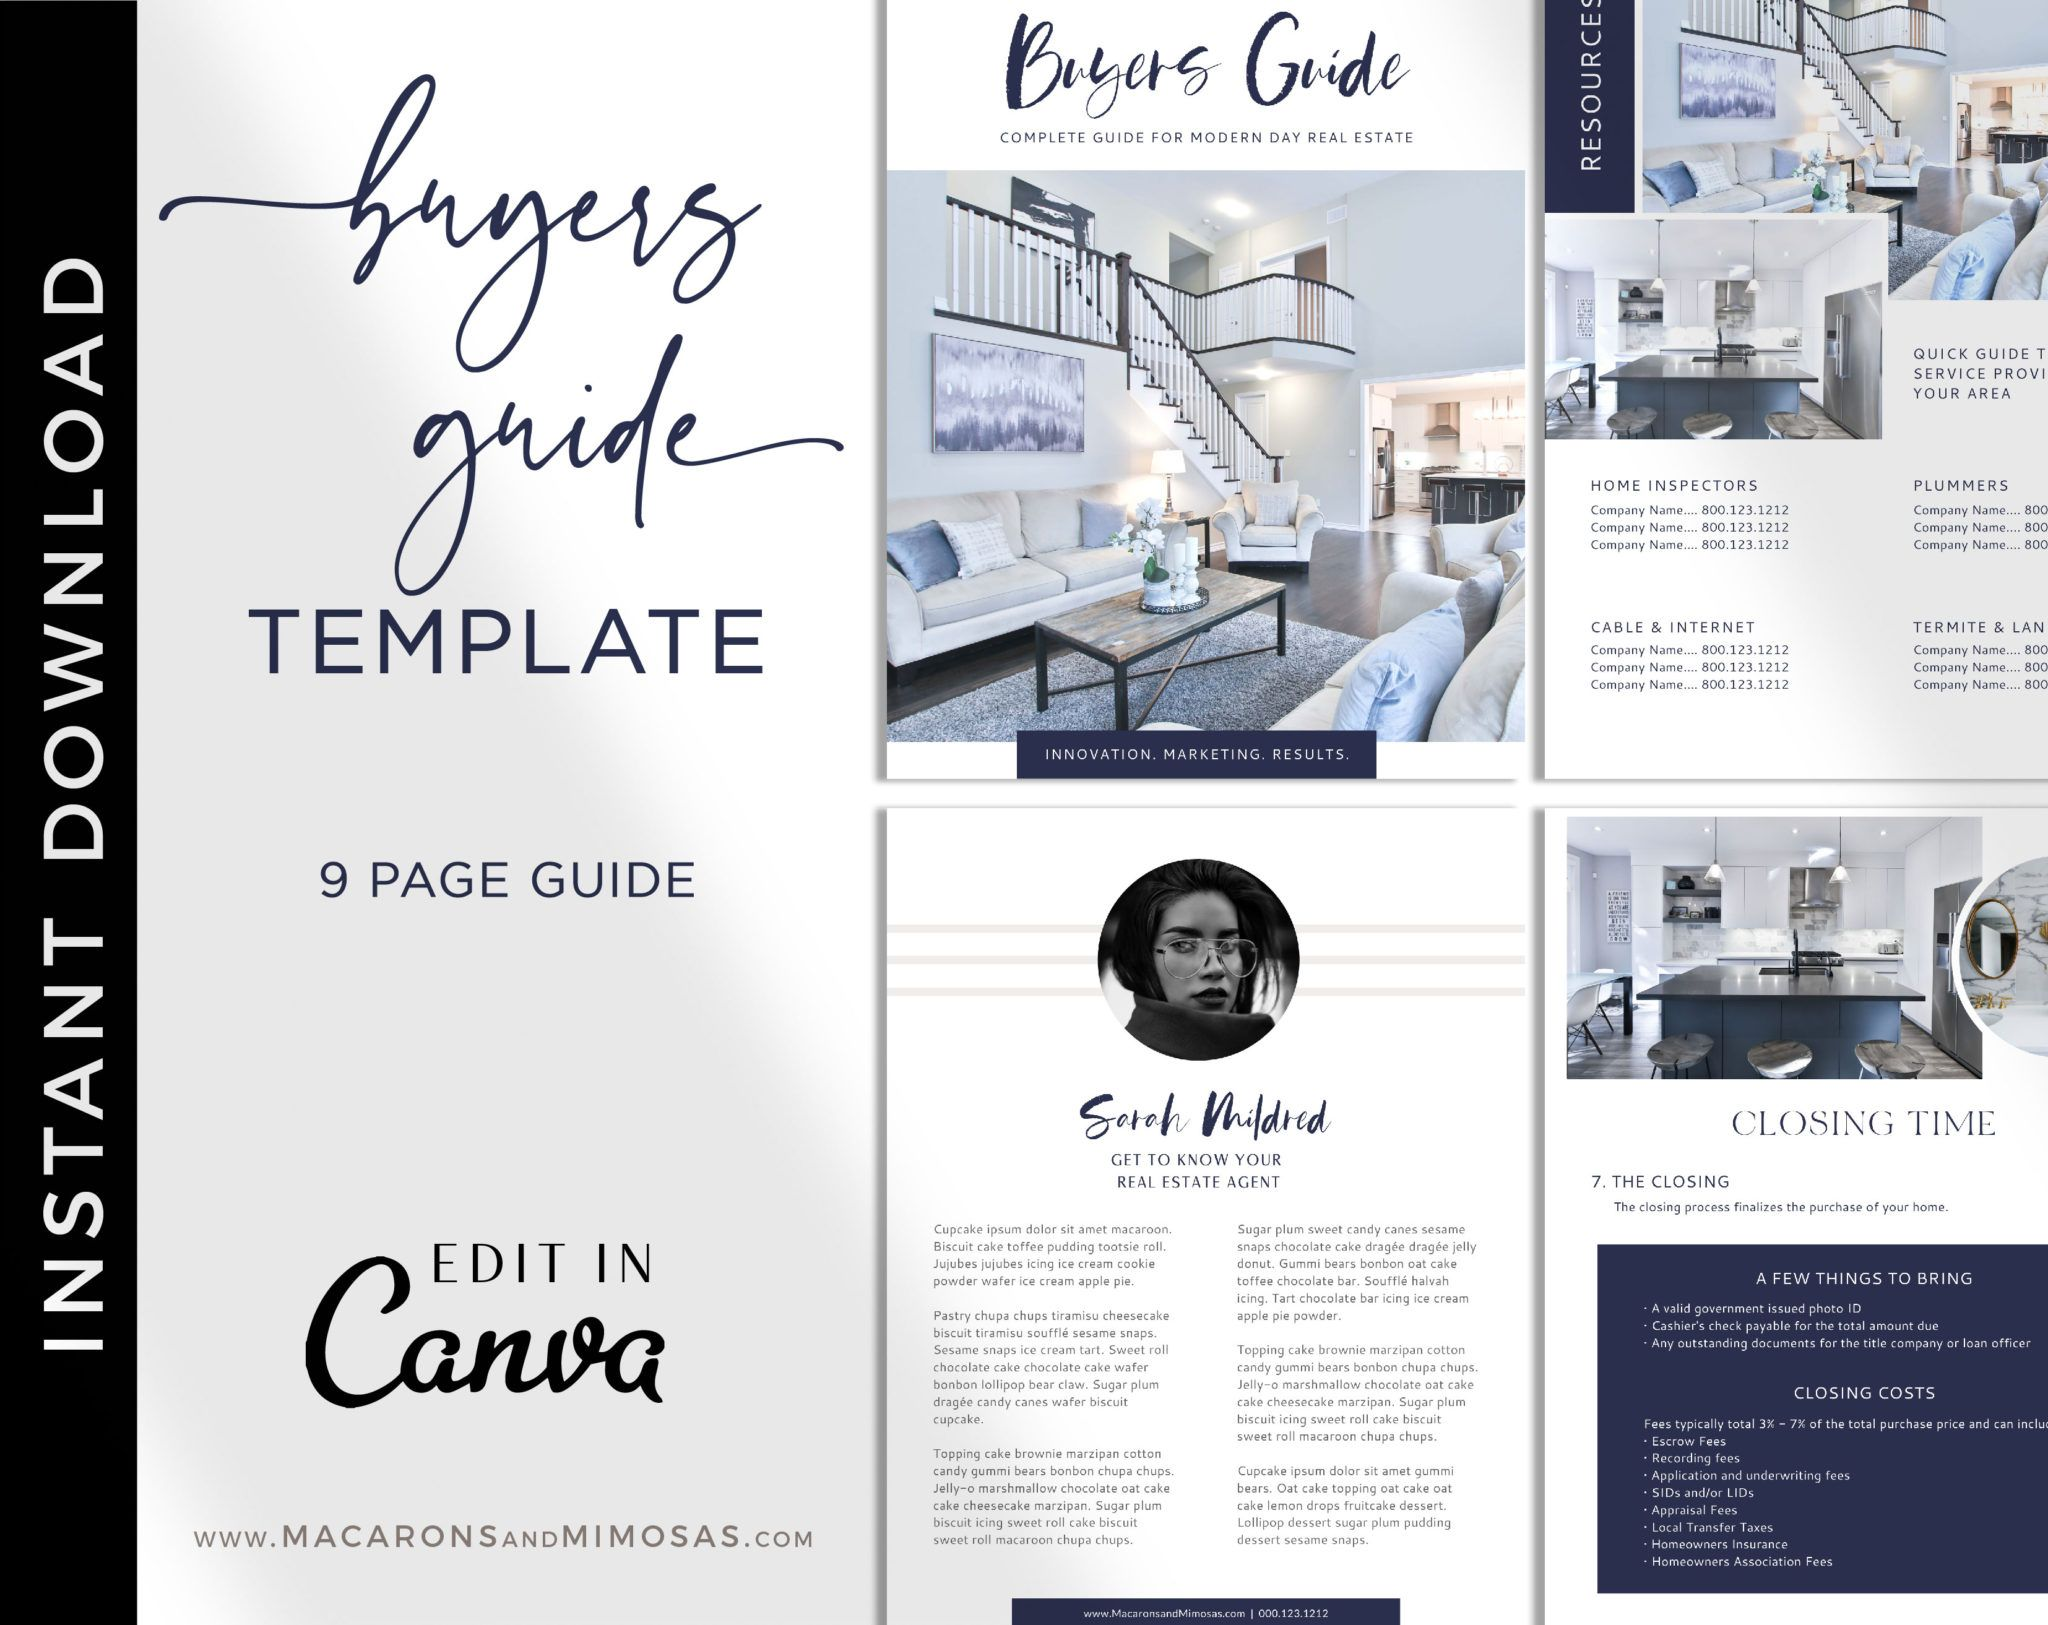 Buyers Guide Template for Canva • Macarons and Mimosas